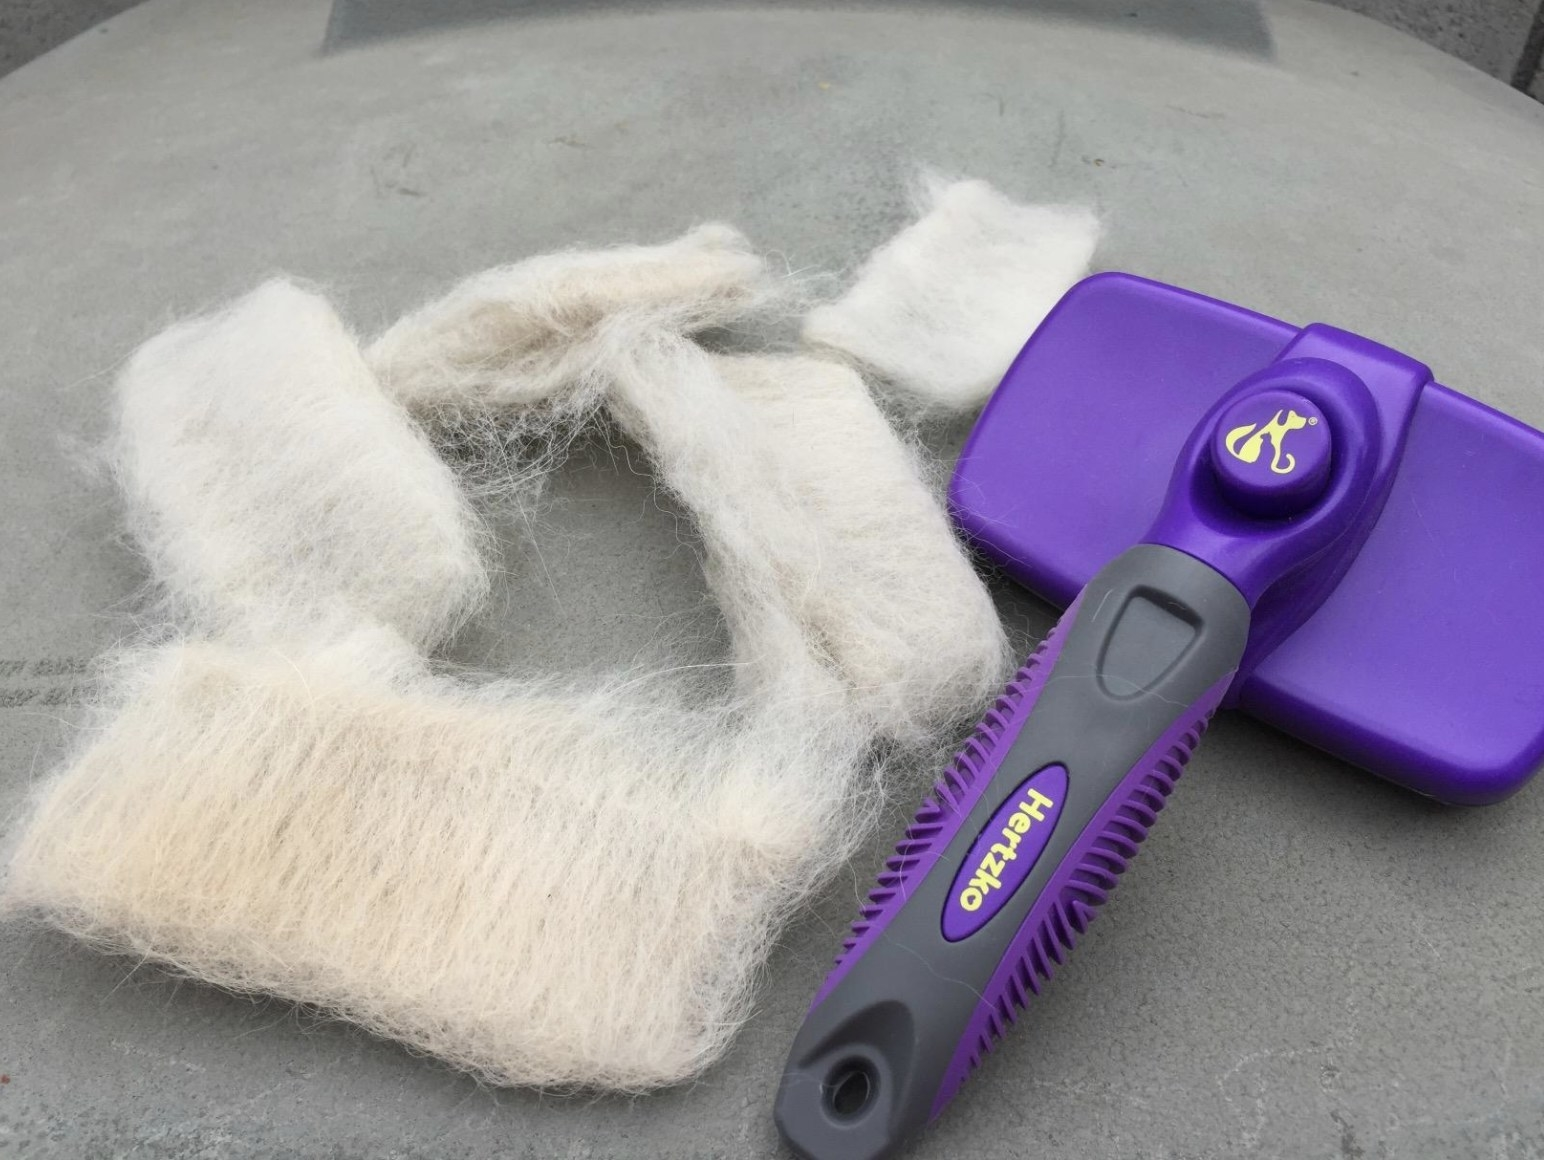 A purple hertzko self-cleaning brush with mounds of fur sitting next to it